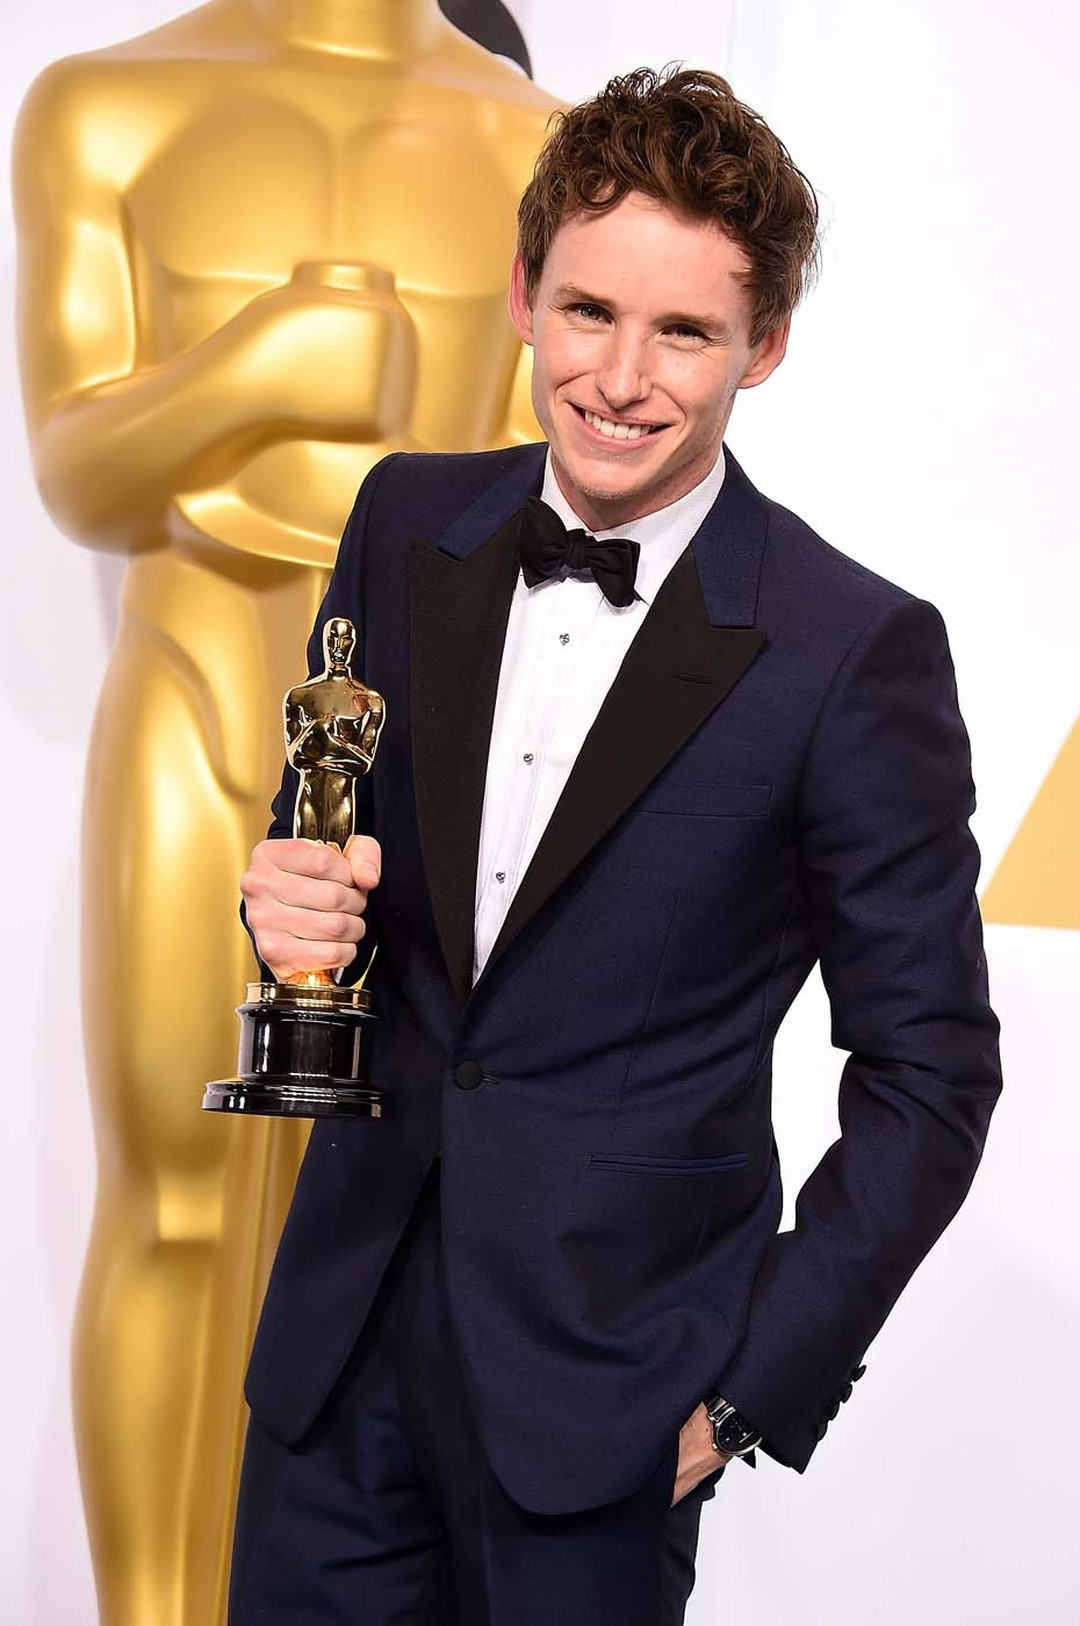 British actor Eddie Redmayne chose to accessorize his bespoke Alexander McQueen suit with a Chopard L.U.C XPS watch in platinum as he collected his Oscar for Best Actor.